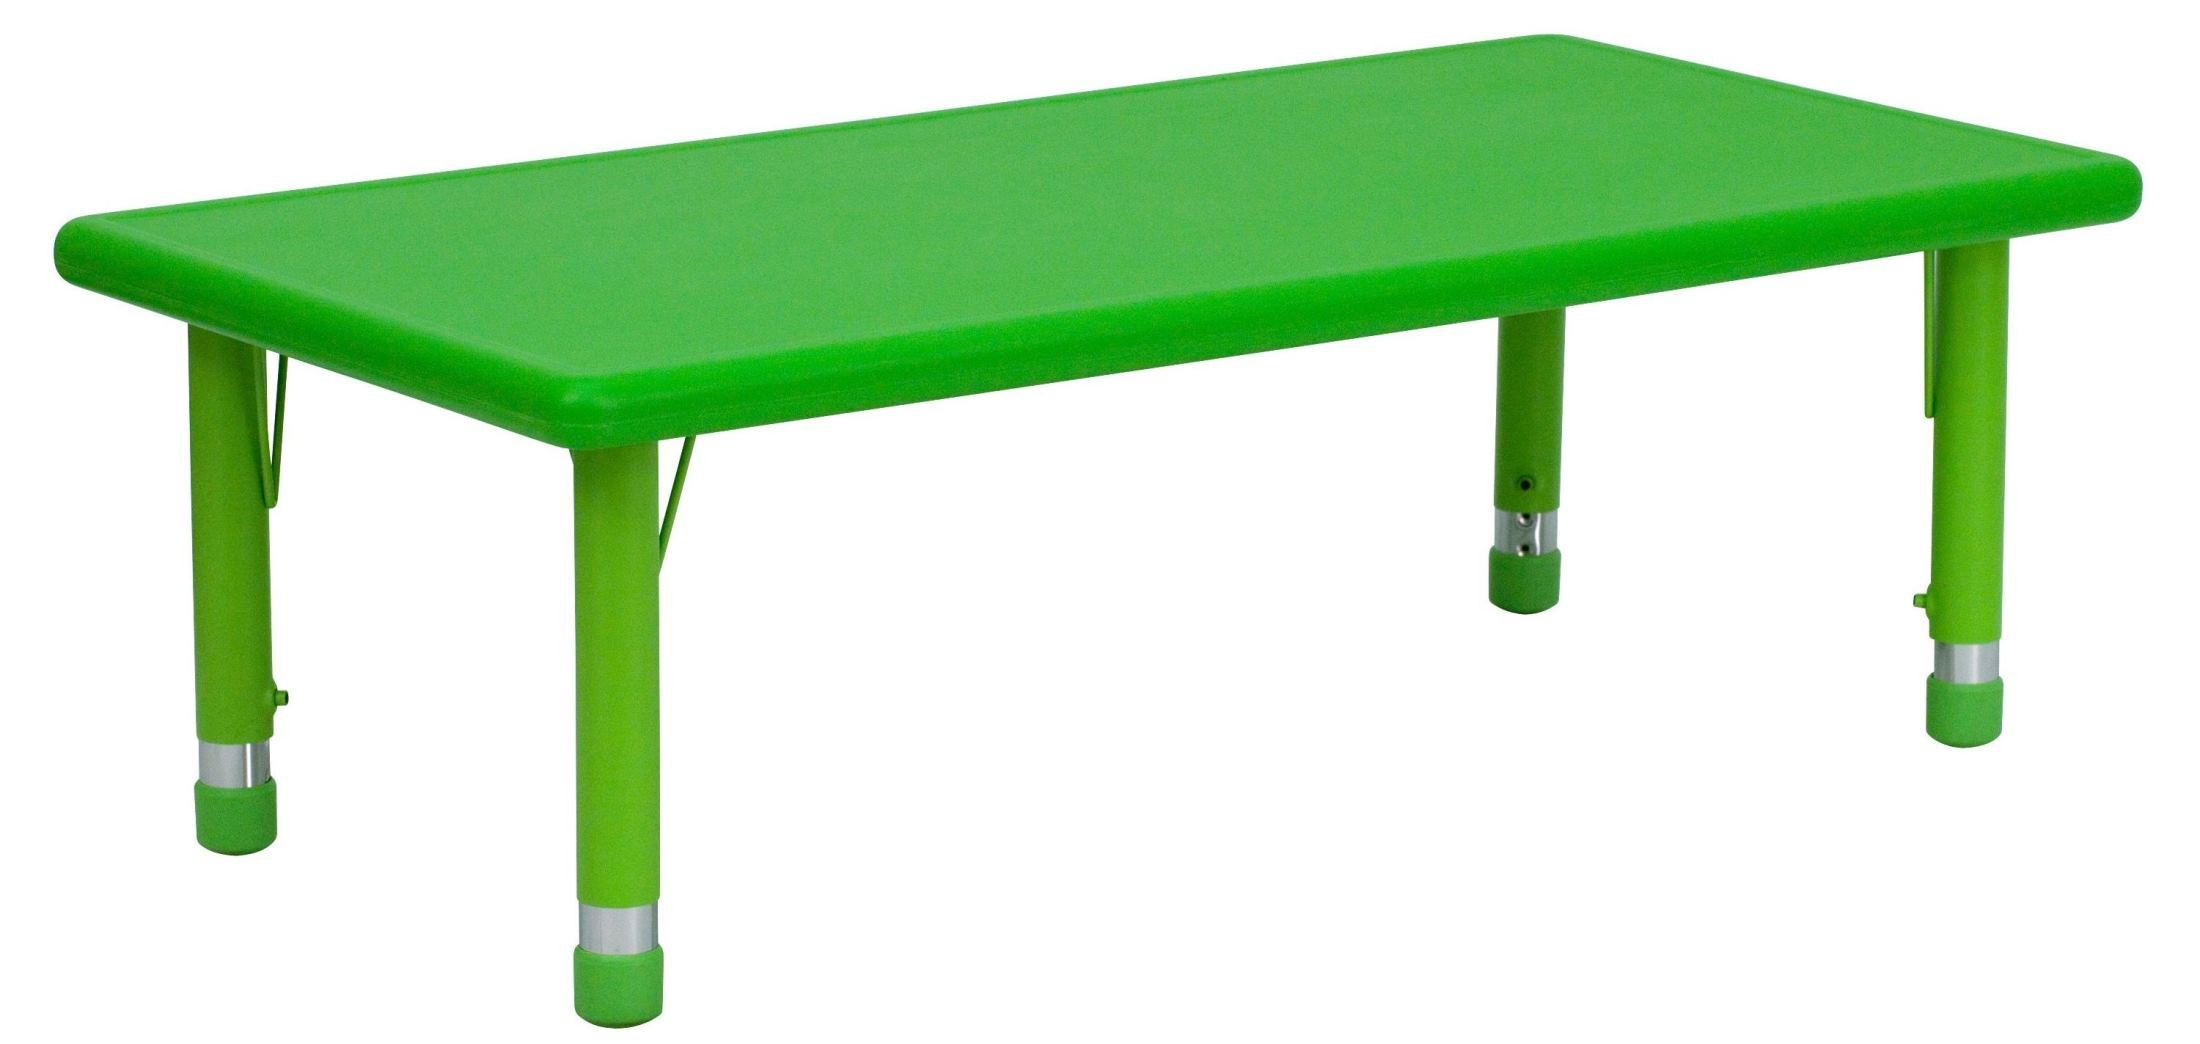 pre tables and chairs cheap folding chaise lounge outdoor 48 39 adjustable height rectangular green plastic activity